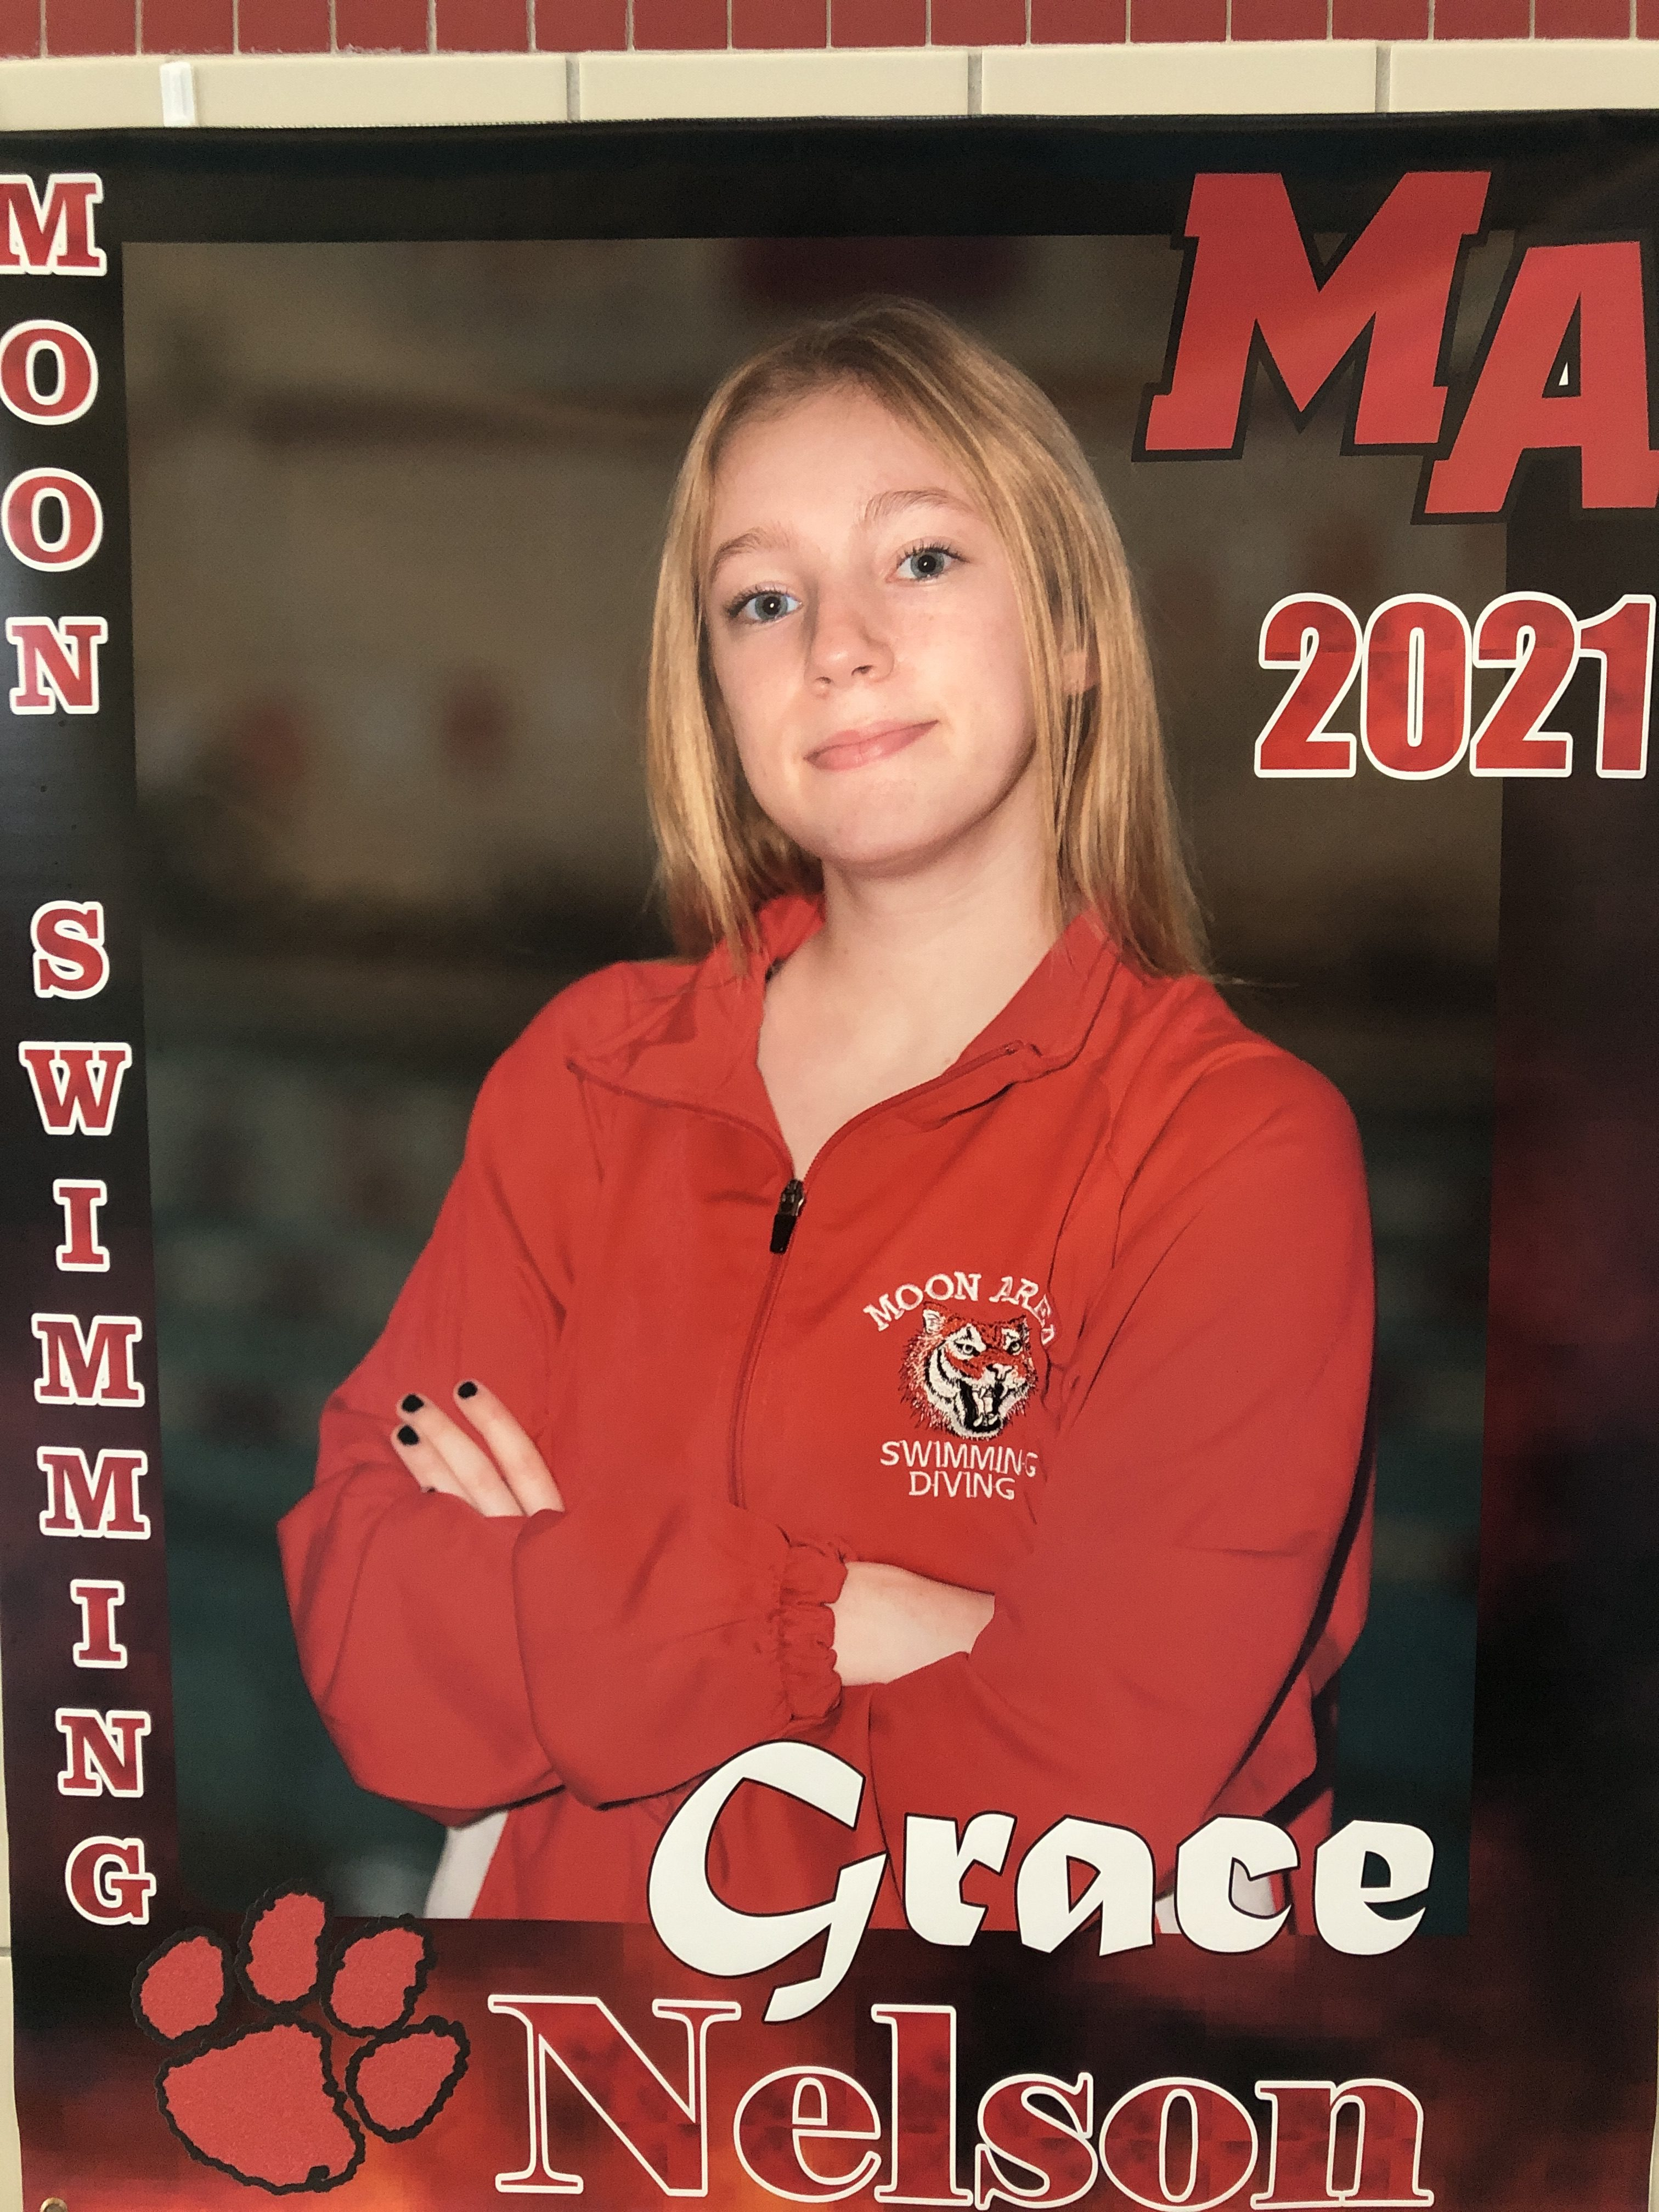 Grace Nelson Leads Dive Team With Her 9th Place Finish at WPIAL Diving Championships!